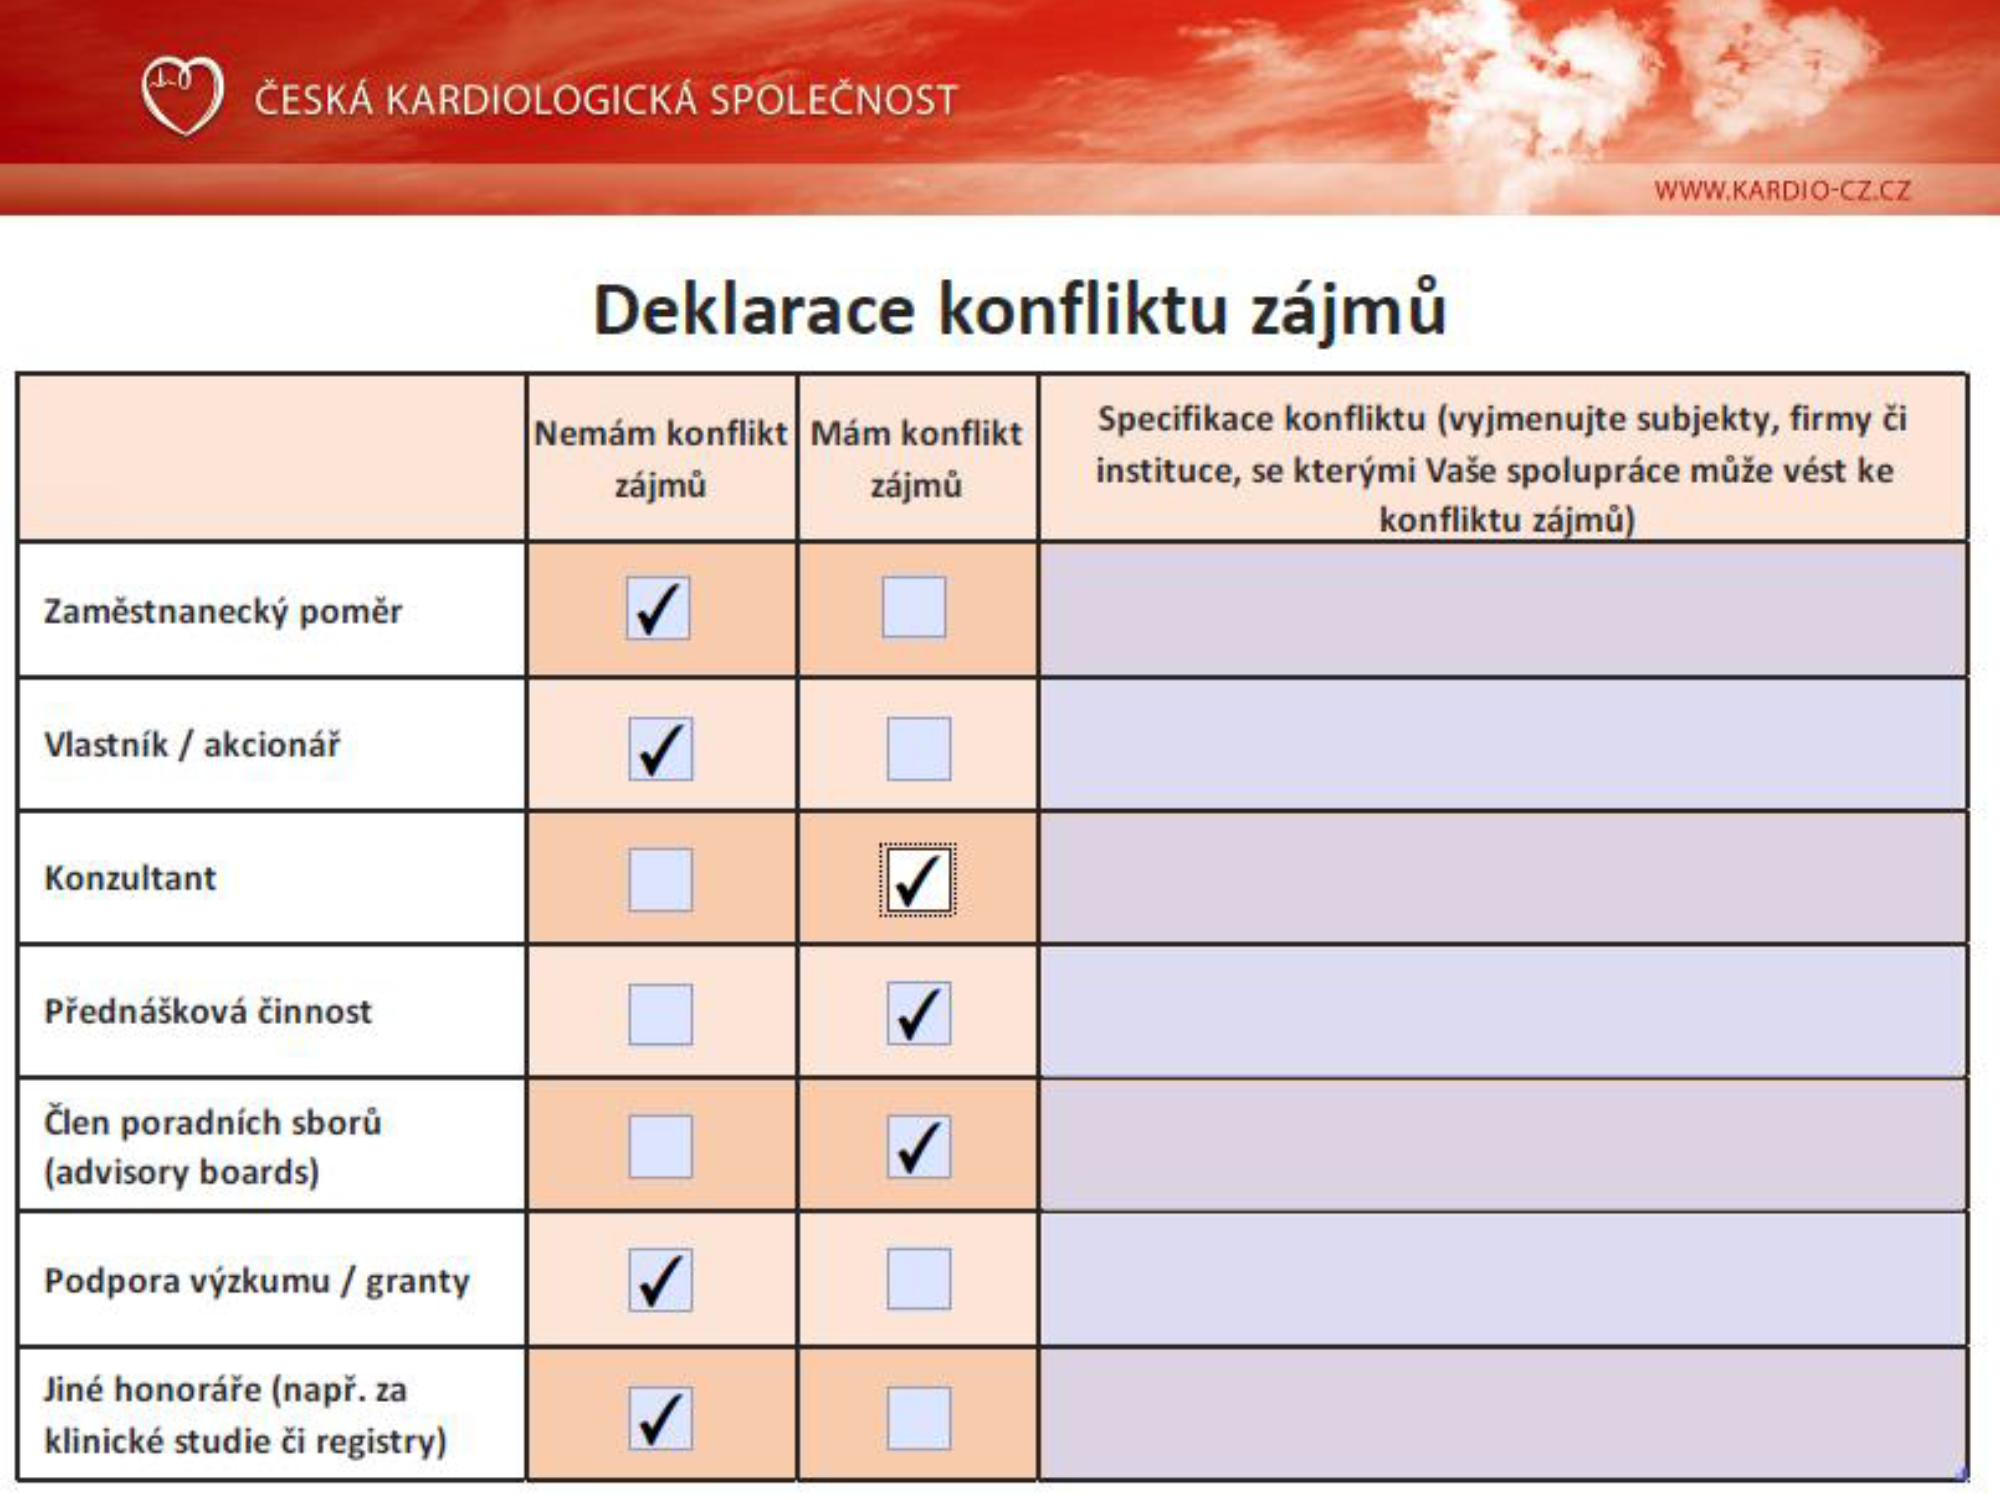 elearning_179_179_26_7dcc7c141dfd9c3bd203a1cacc0bf01b.png